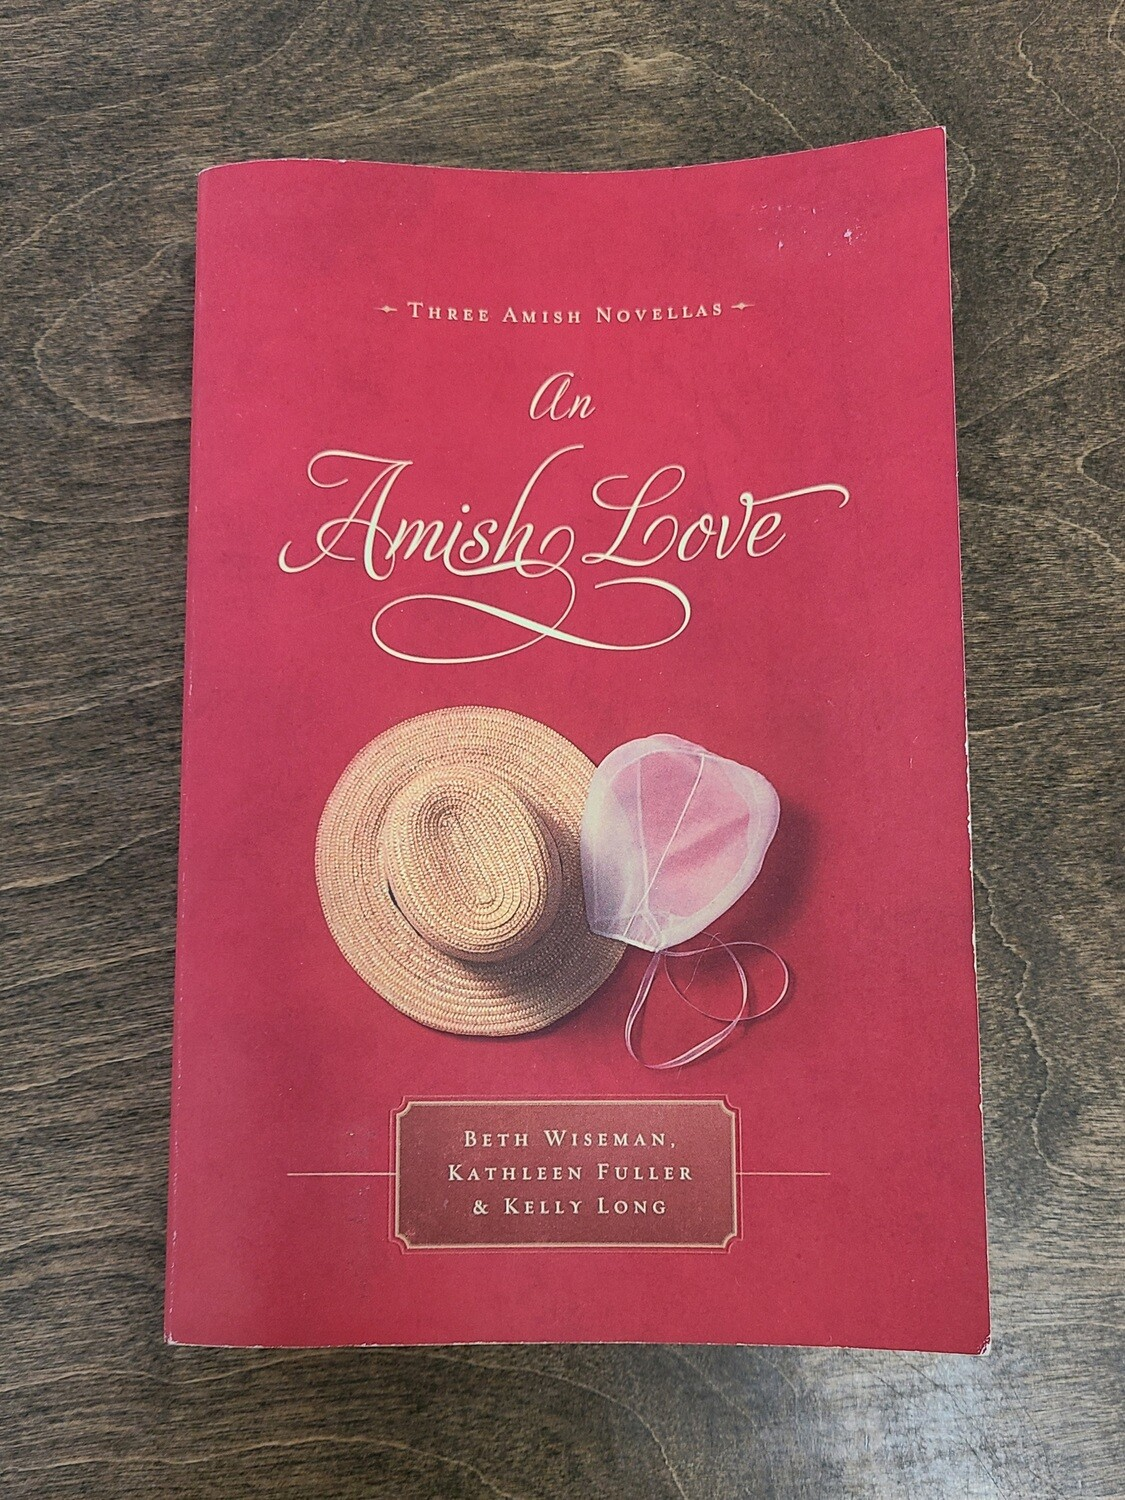 An Amish Love by Beth Wiseman, Kathleen Fuller, and Kelly Long